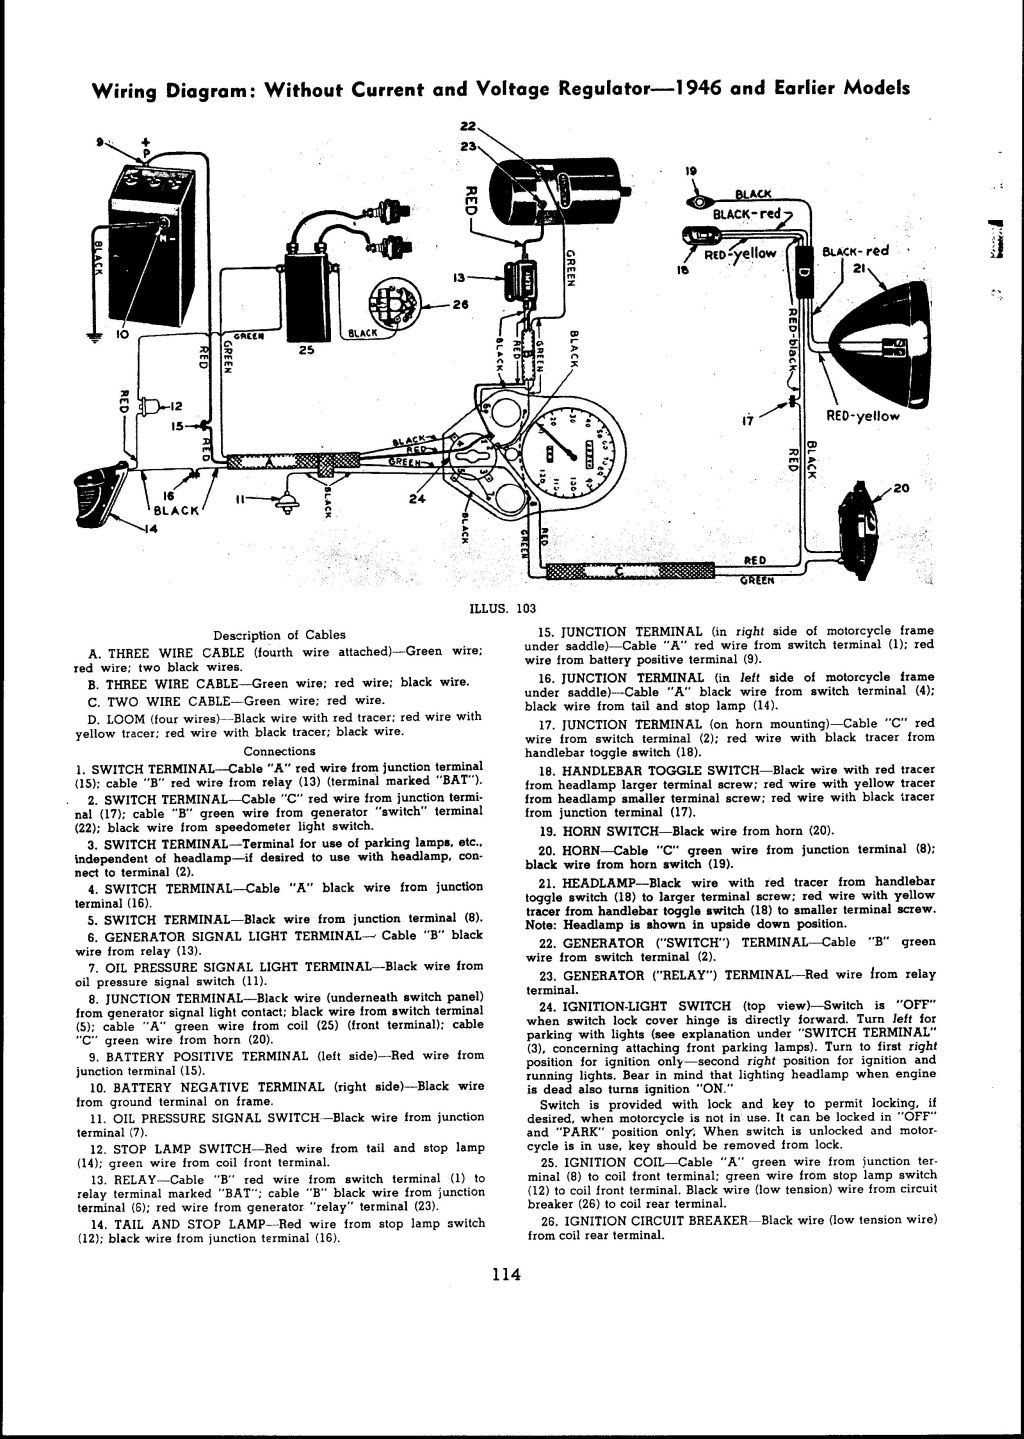 1988 harley davidson sportster wiring diagram images harley davidson coil wiring diagram re wiring the harley design